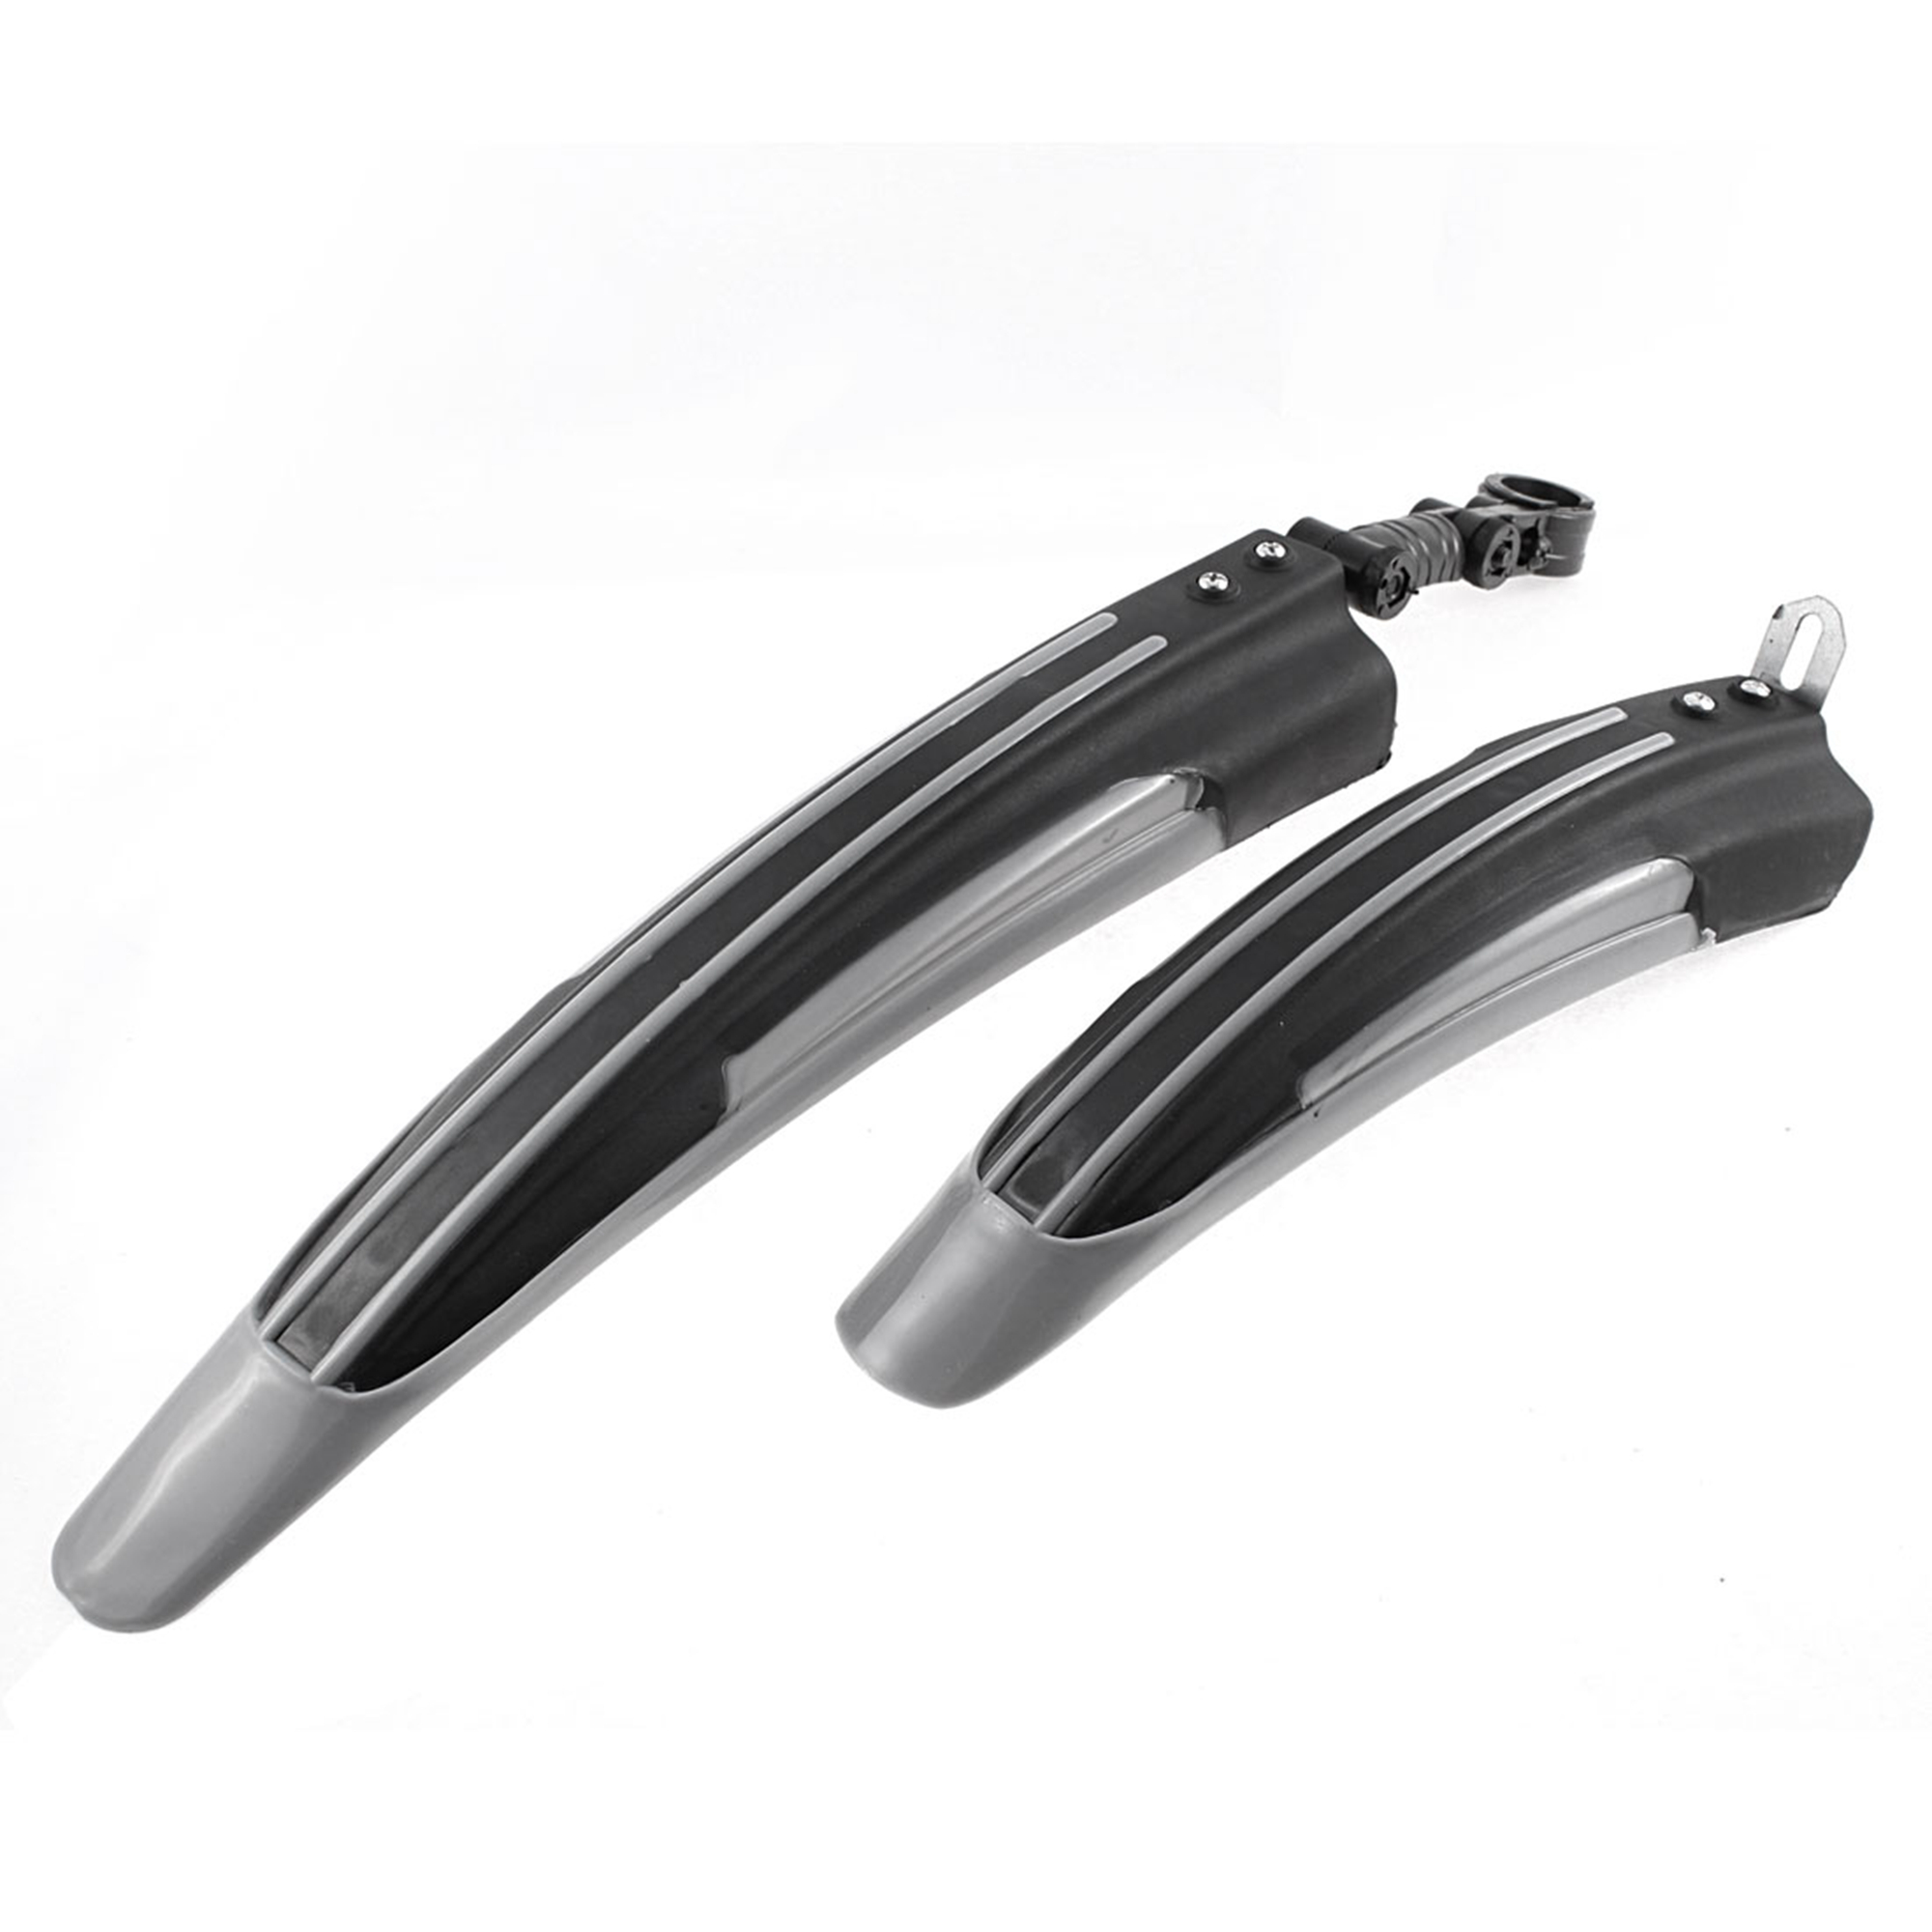 Bicycle Bike Mountain Road Front Rear Fender Mudguard Guard Black Gray